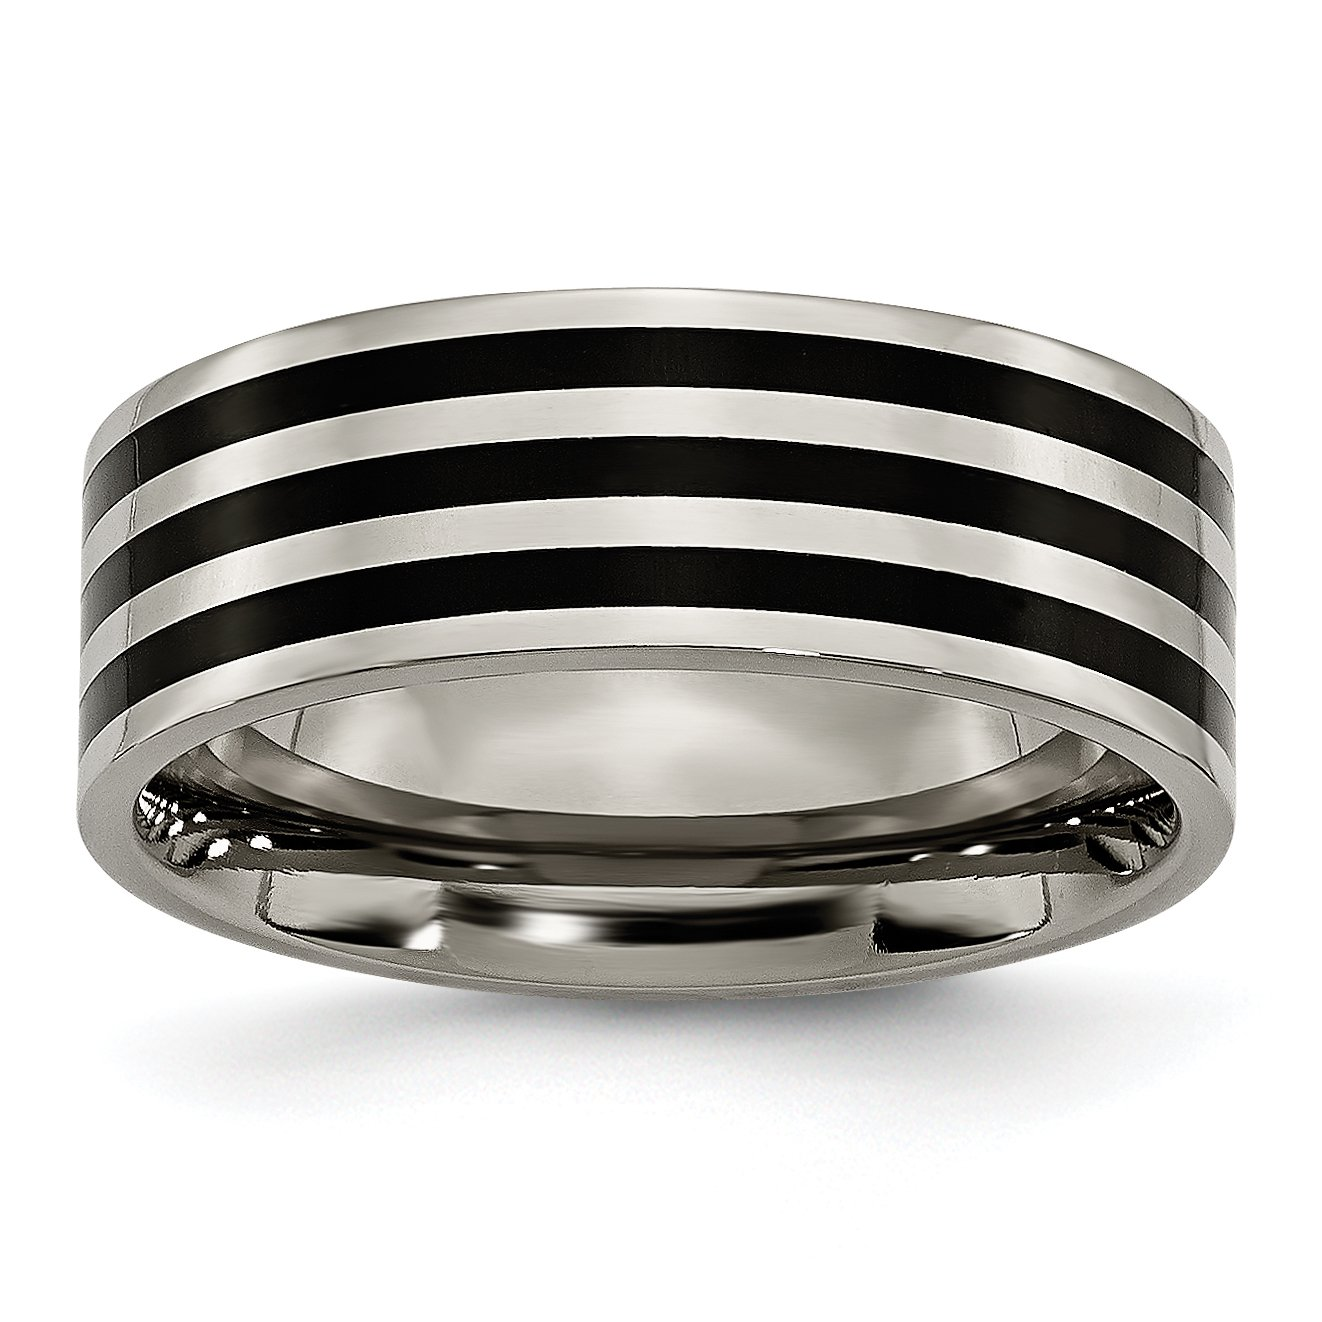 Jewelry Pot Titanium Grooved 8mm Black-Plated Stripes Polished Engravable Band